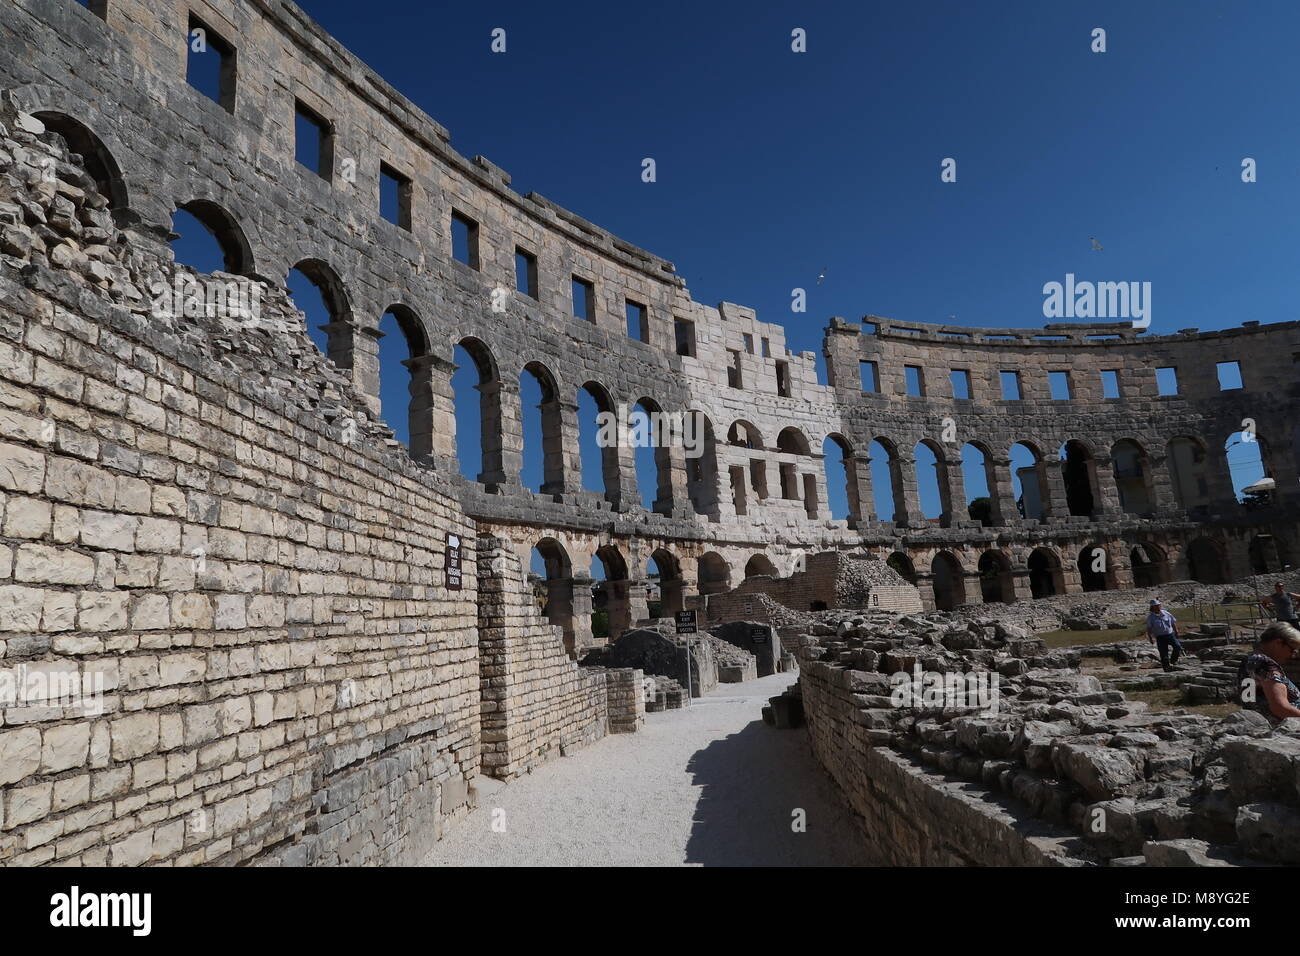 Amphitheater of Pula in croatia on a sunny day - Stock Image